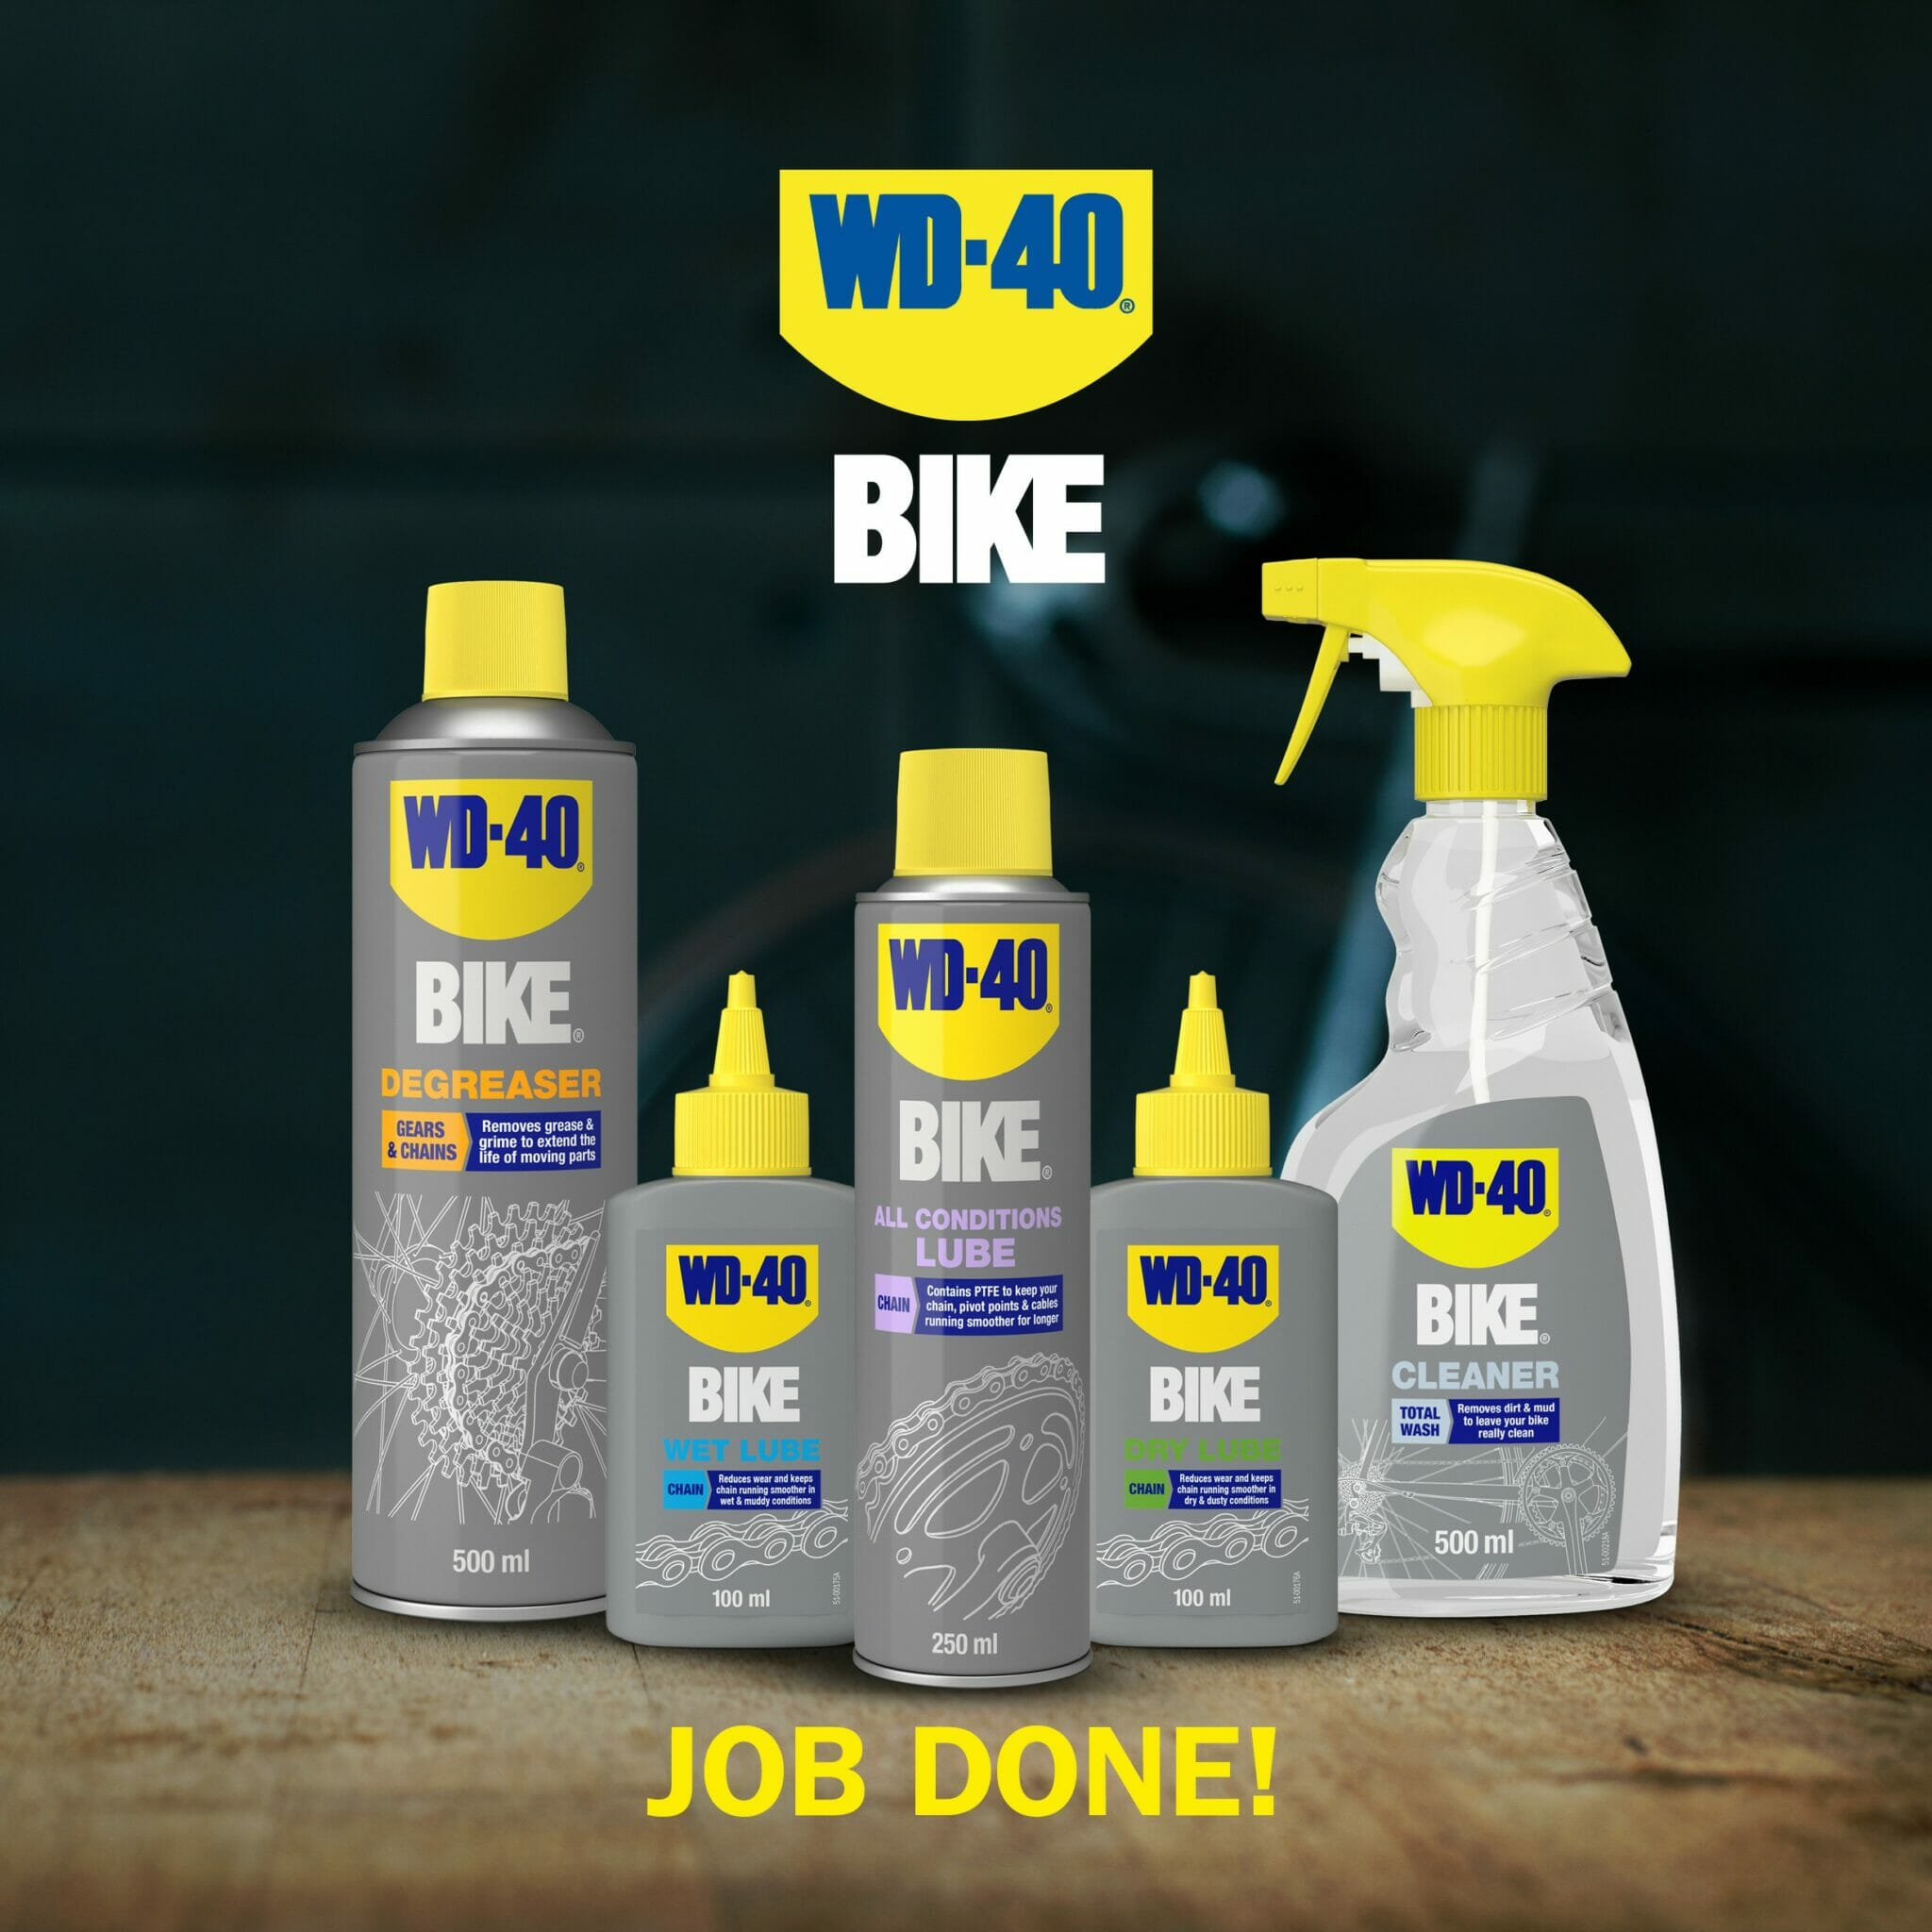 wd40 bike dry lube how to use part 9